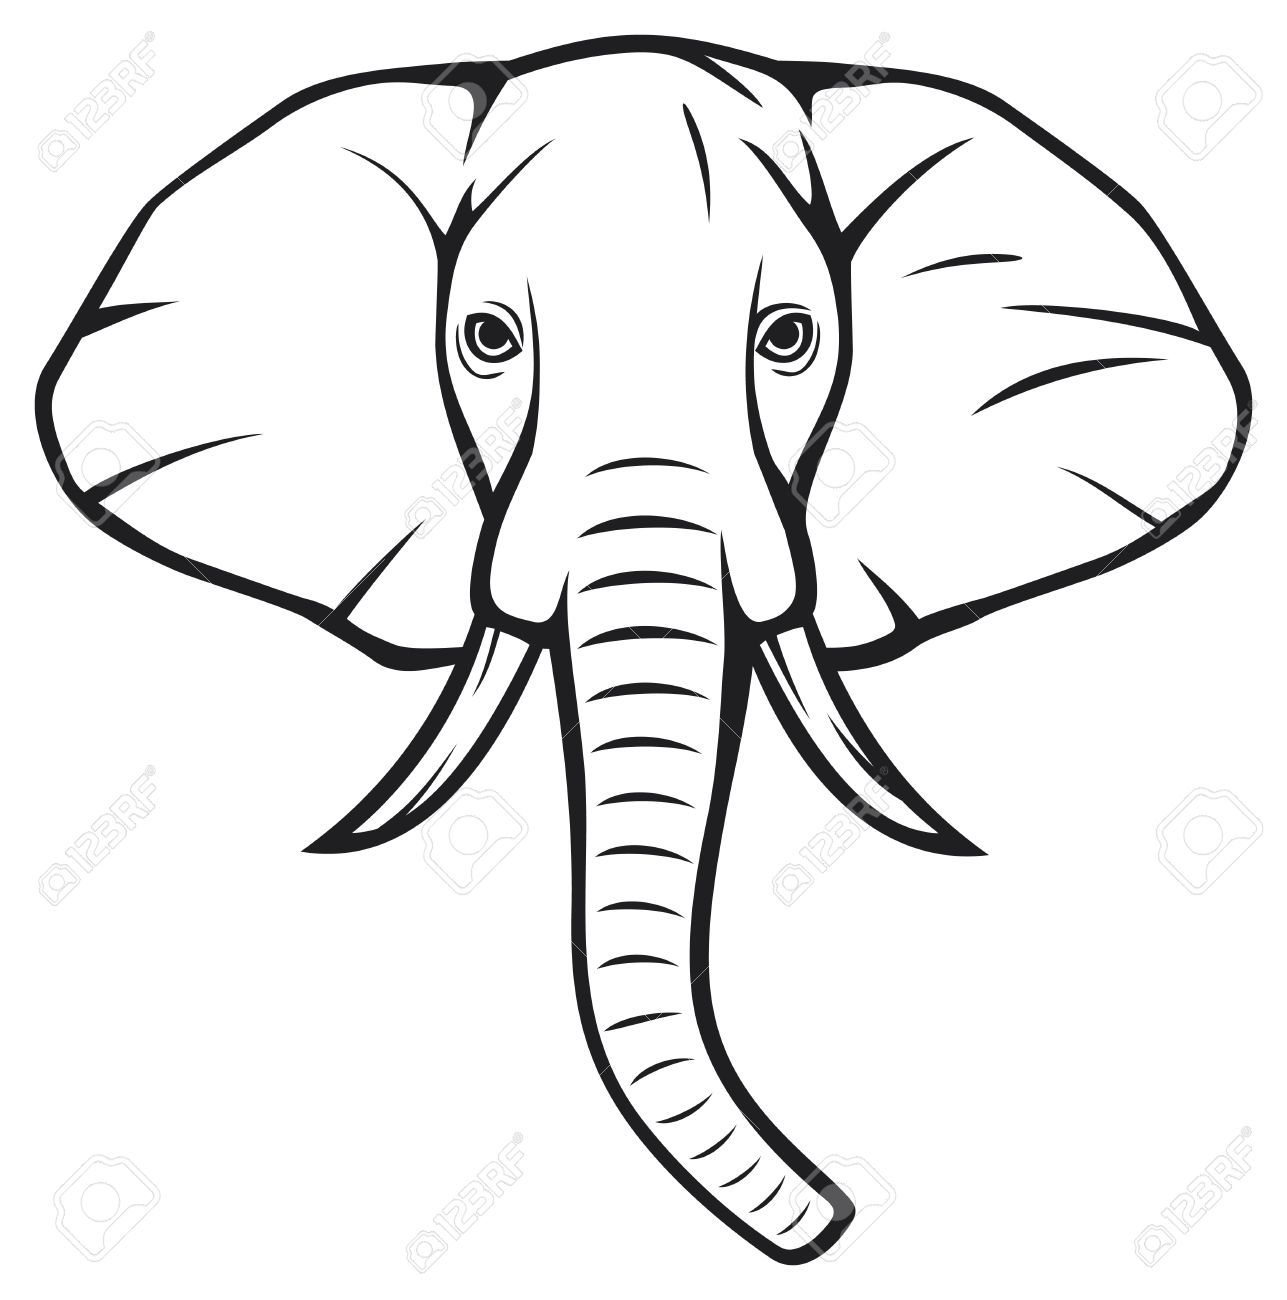 Elephant outline template sok pa google rocks pinterest outlines template and rock art for Google outline template